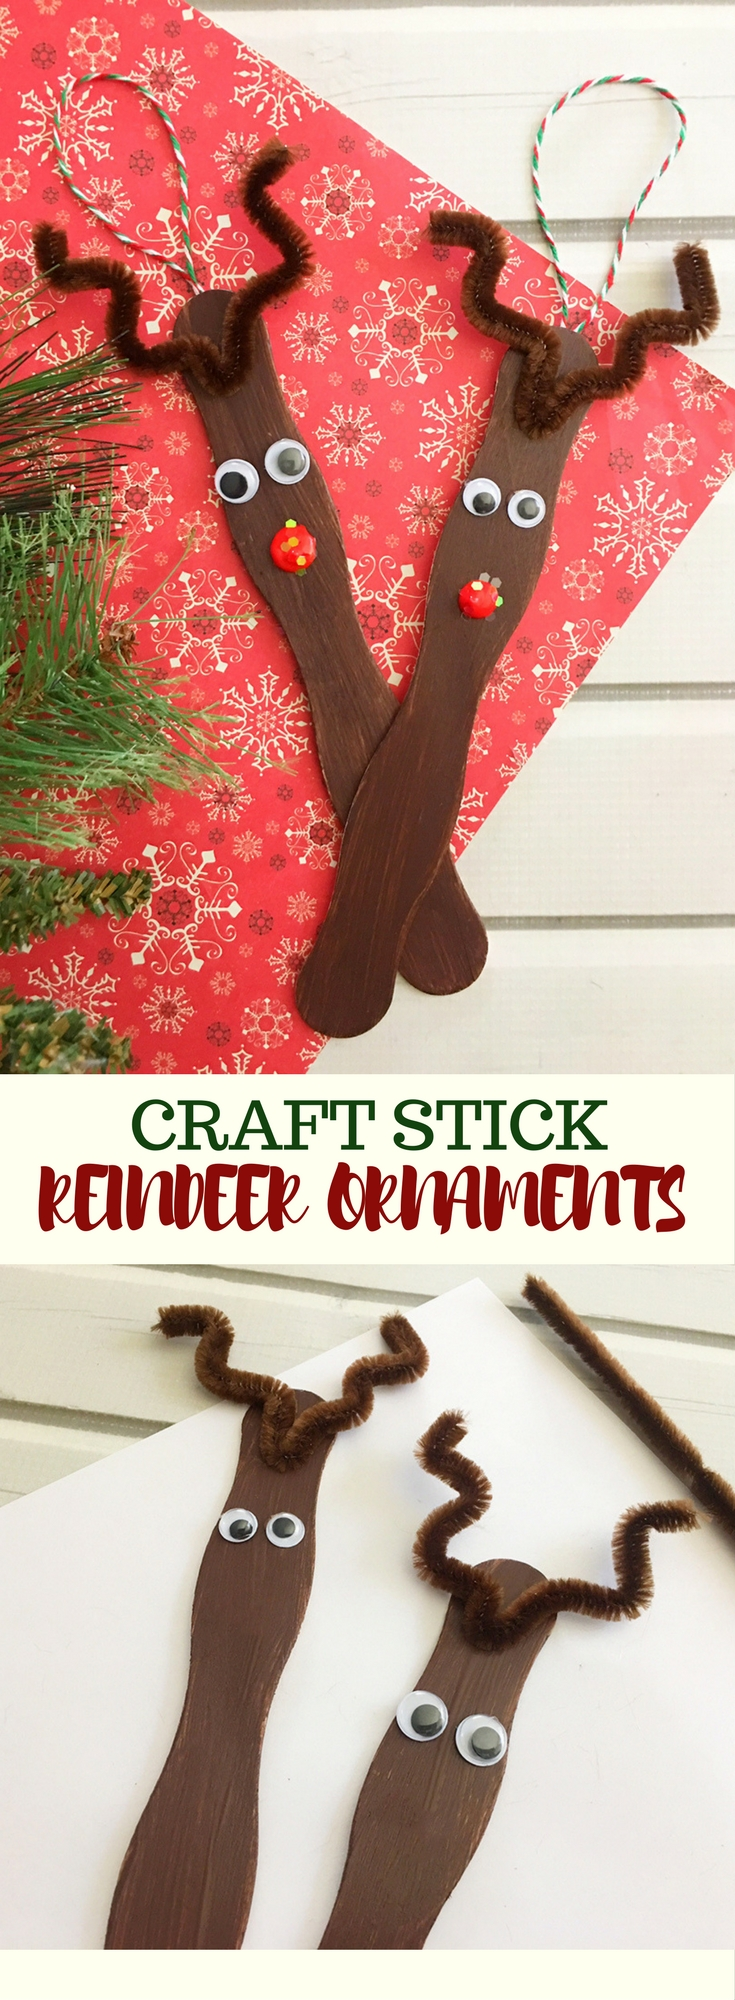 Craft Stick Reindeer Ornaments are an easy and fun Christmas craft to do with the whole family. Super adorable as tree decorations or gift package toppers!